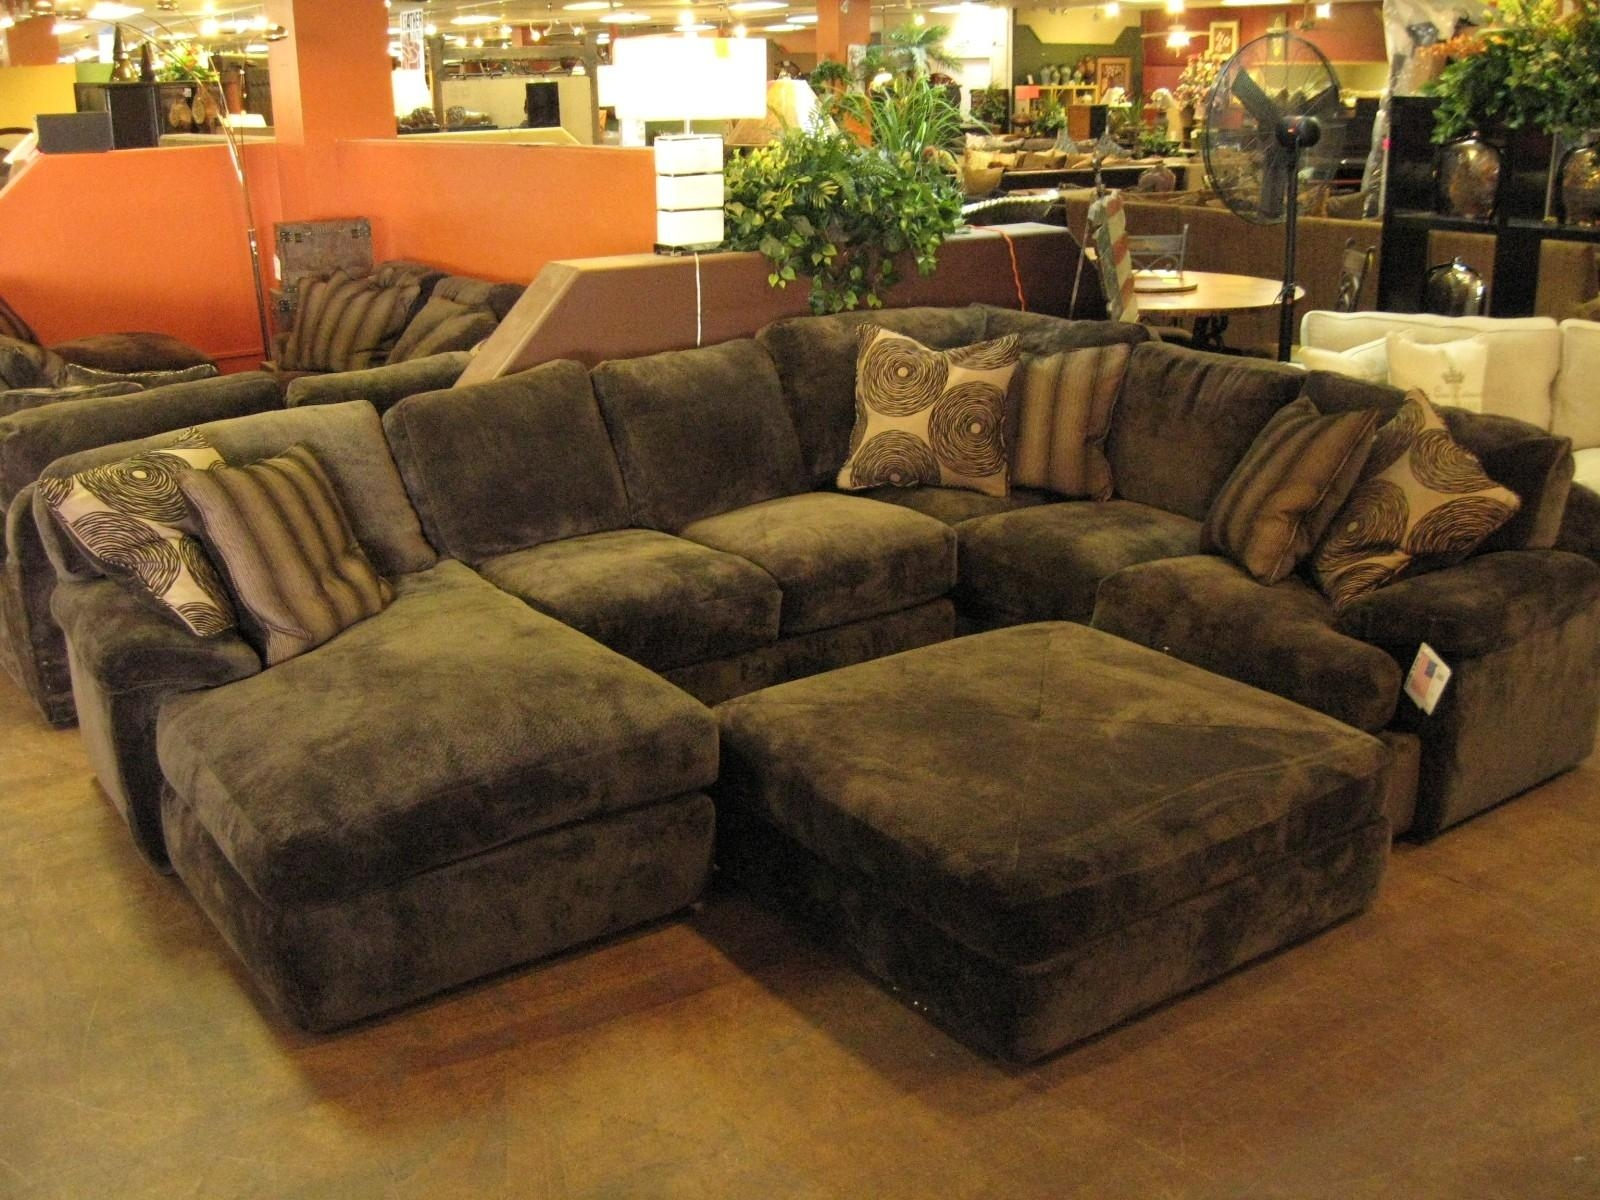 Interior: Luxury Oversized Sectional Sofa For Awesome Living Room Throughout Oversized Sectional (Image 9 of 20)